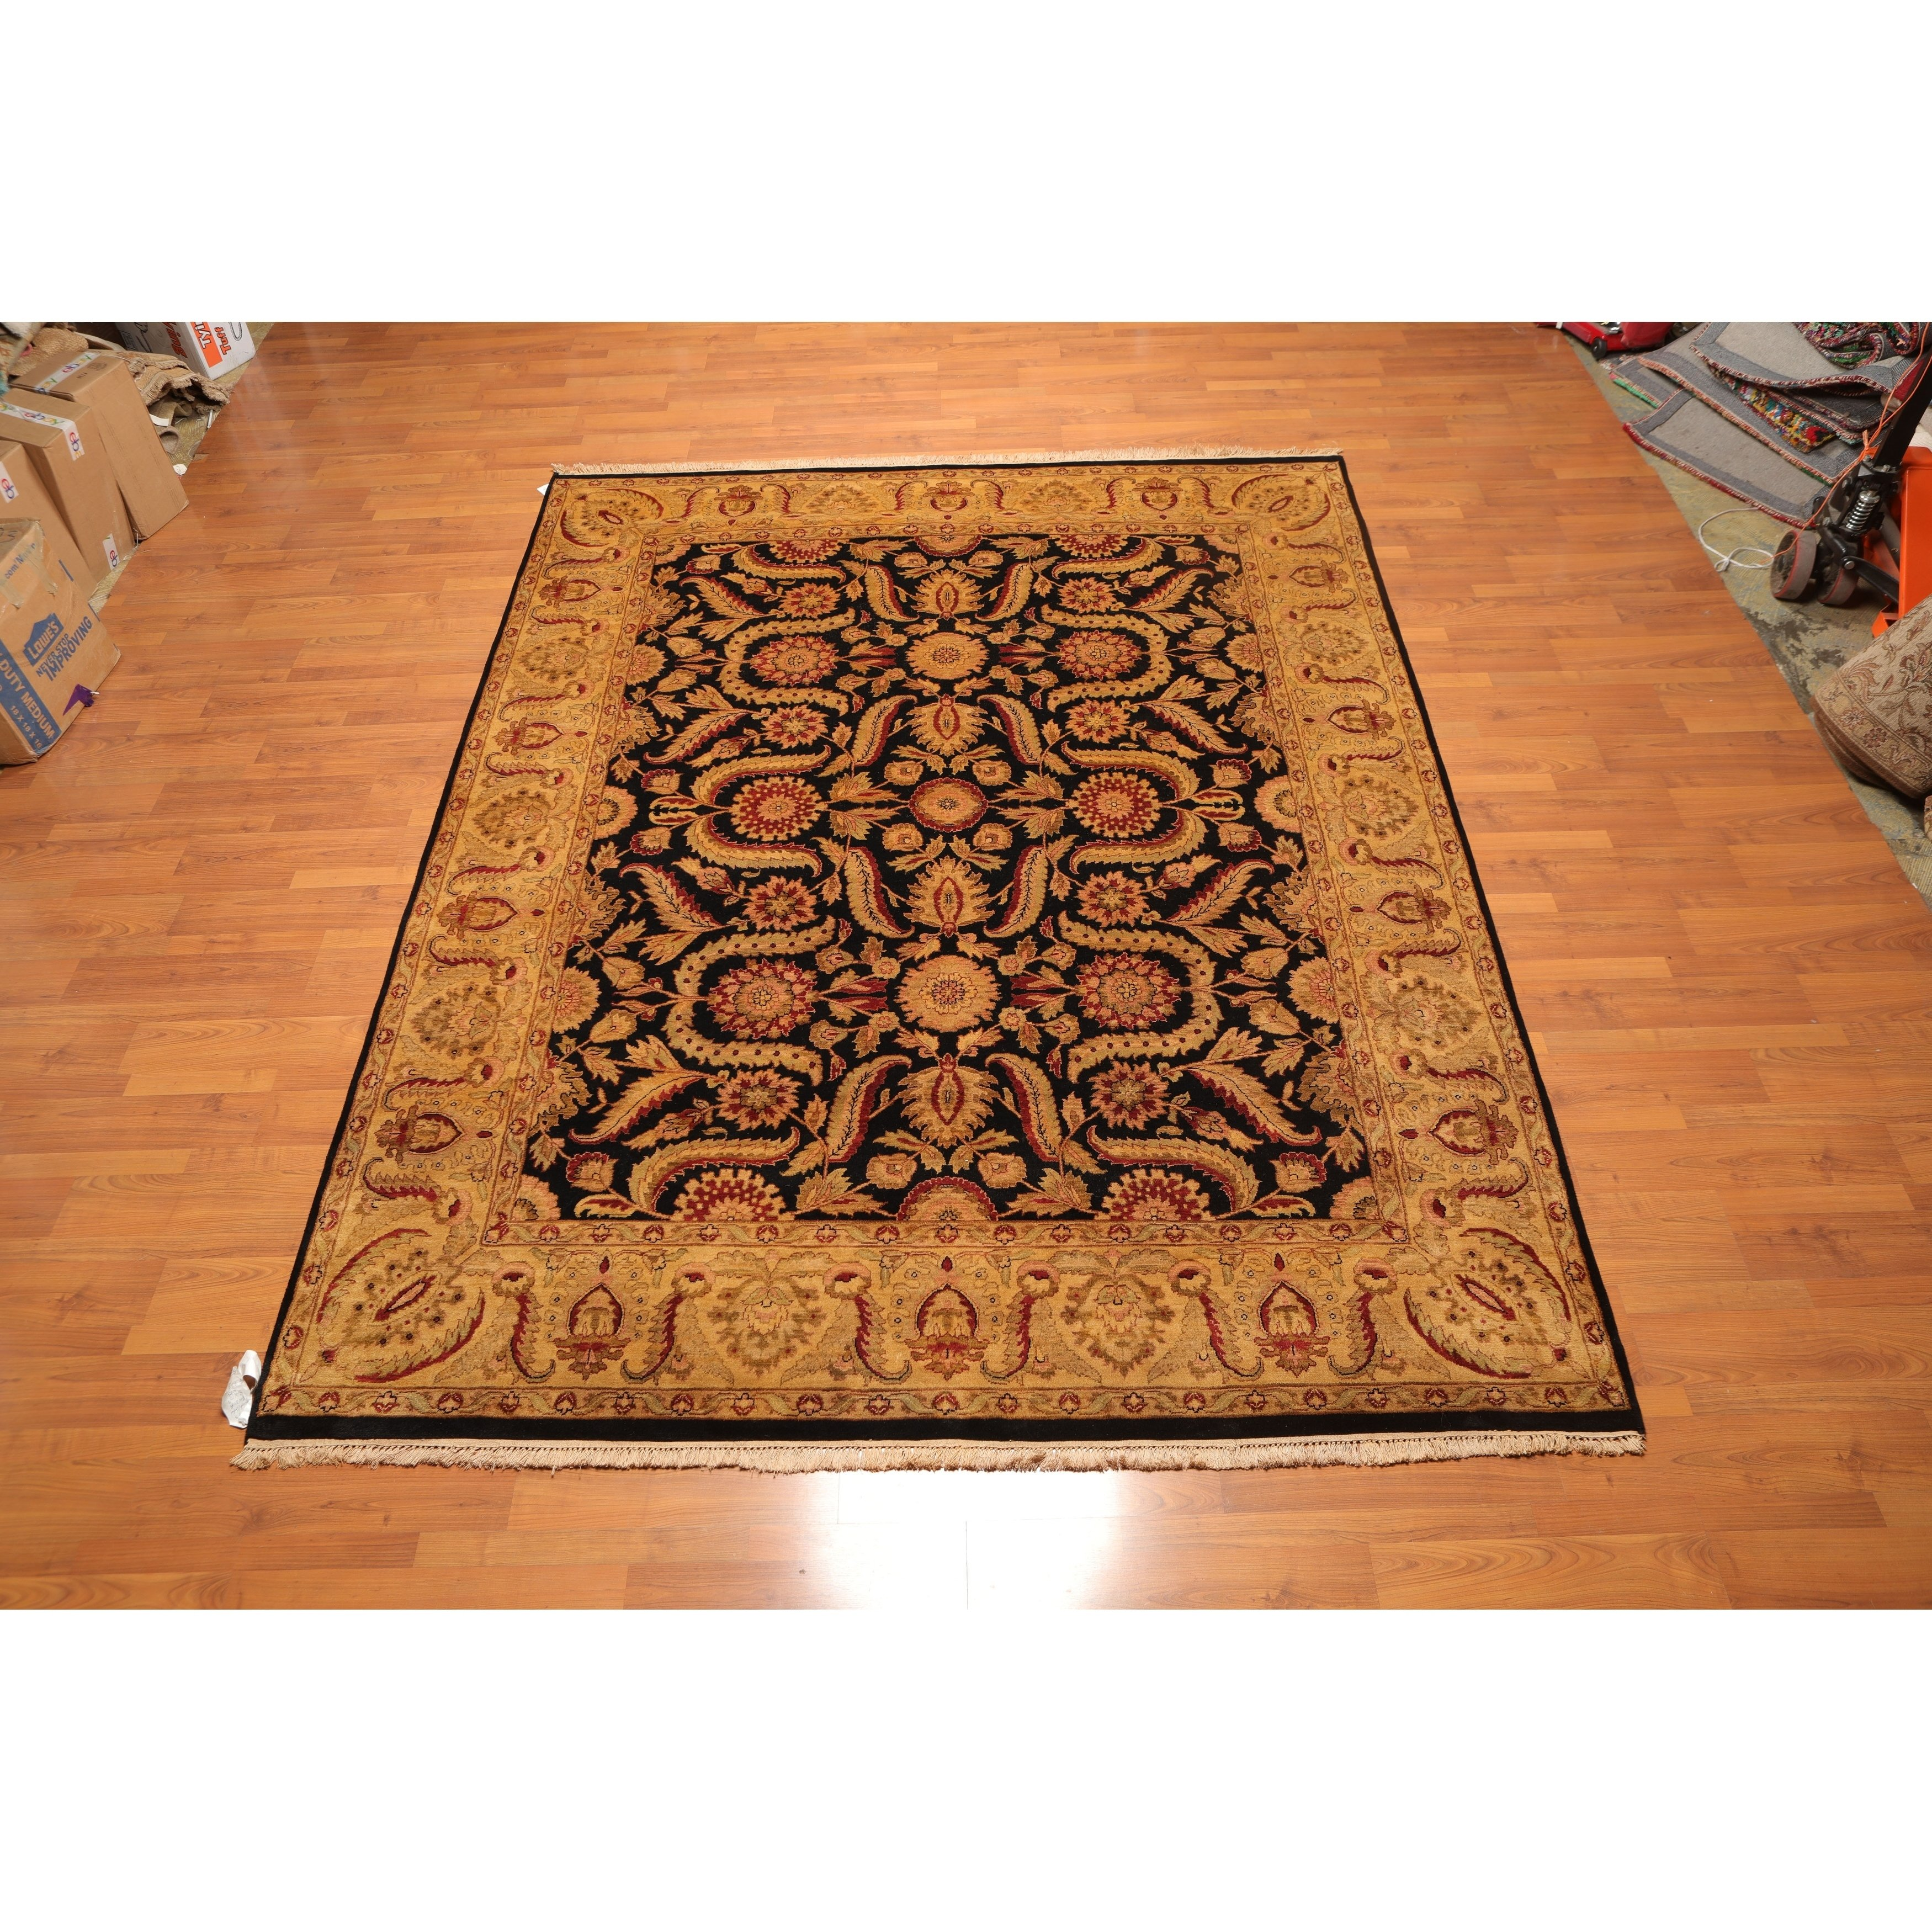 Hand Knotted Wool 150 Kpsi Agra Tea Wash Persian Area Rug 8 X10 3 8 X 10 Black Burgundy Gold Persian Area Rugs Wool Area Rugs Colorful Rugs